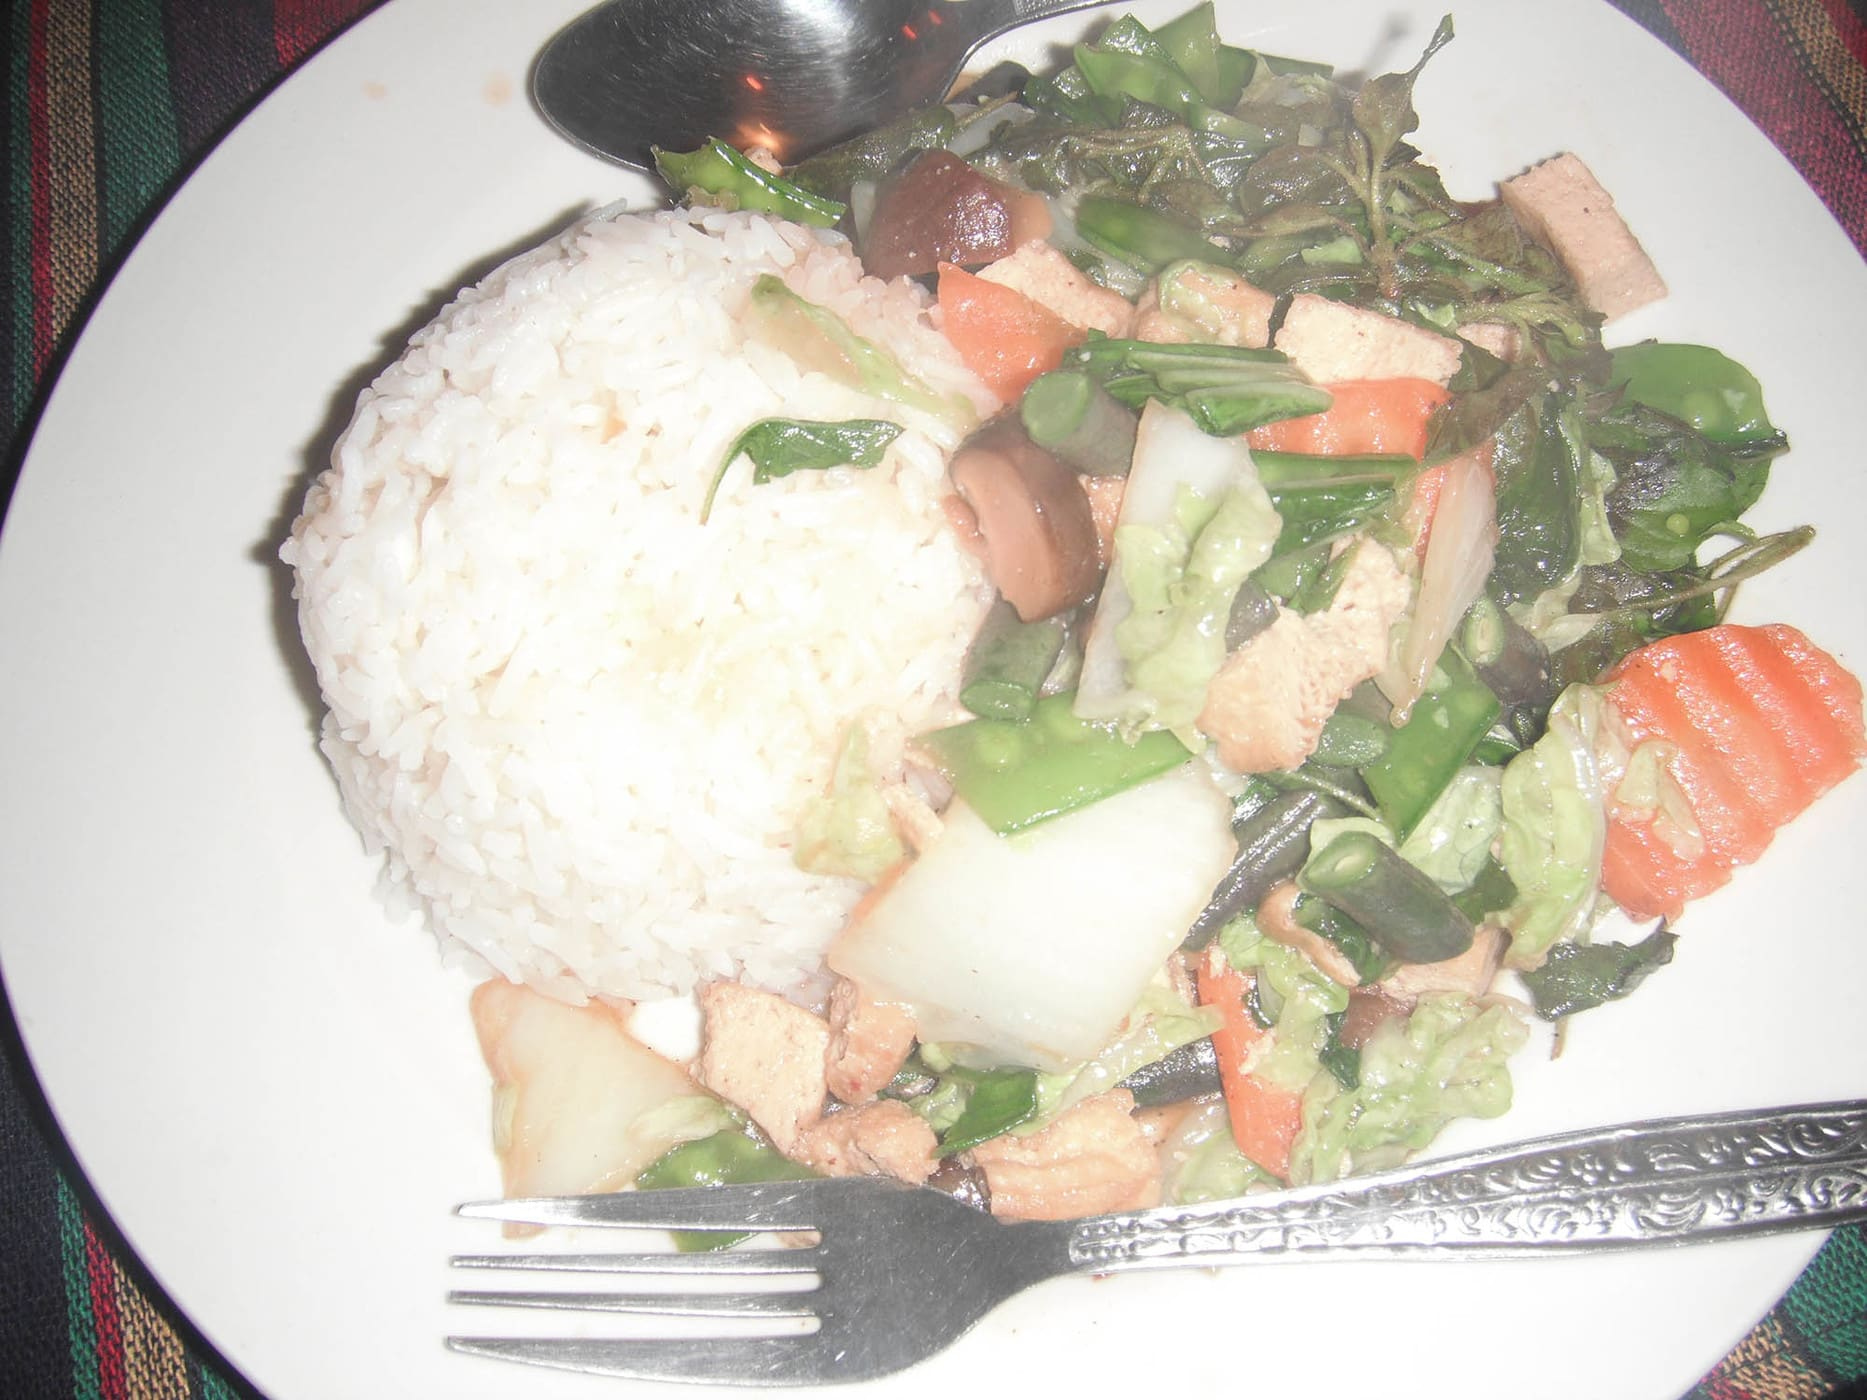 Vegetarian dinner in Vang Vieng, Laos.